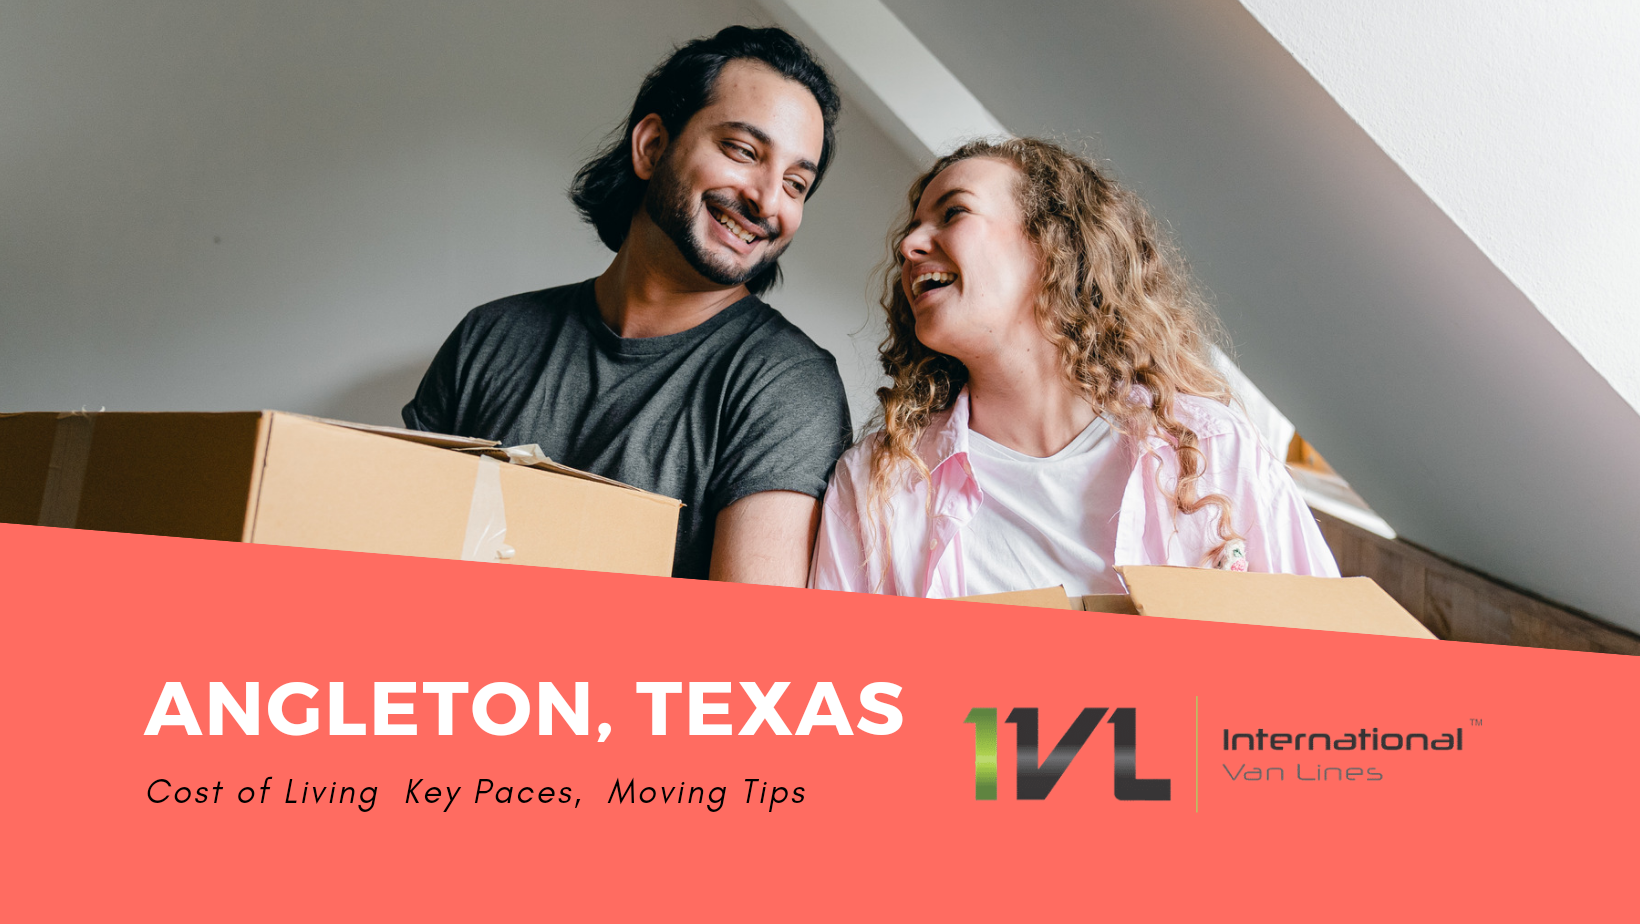 Angleton Texas – Cost of Living, Best Places, Moving Tips